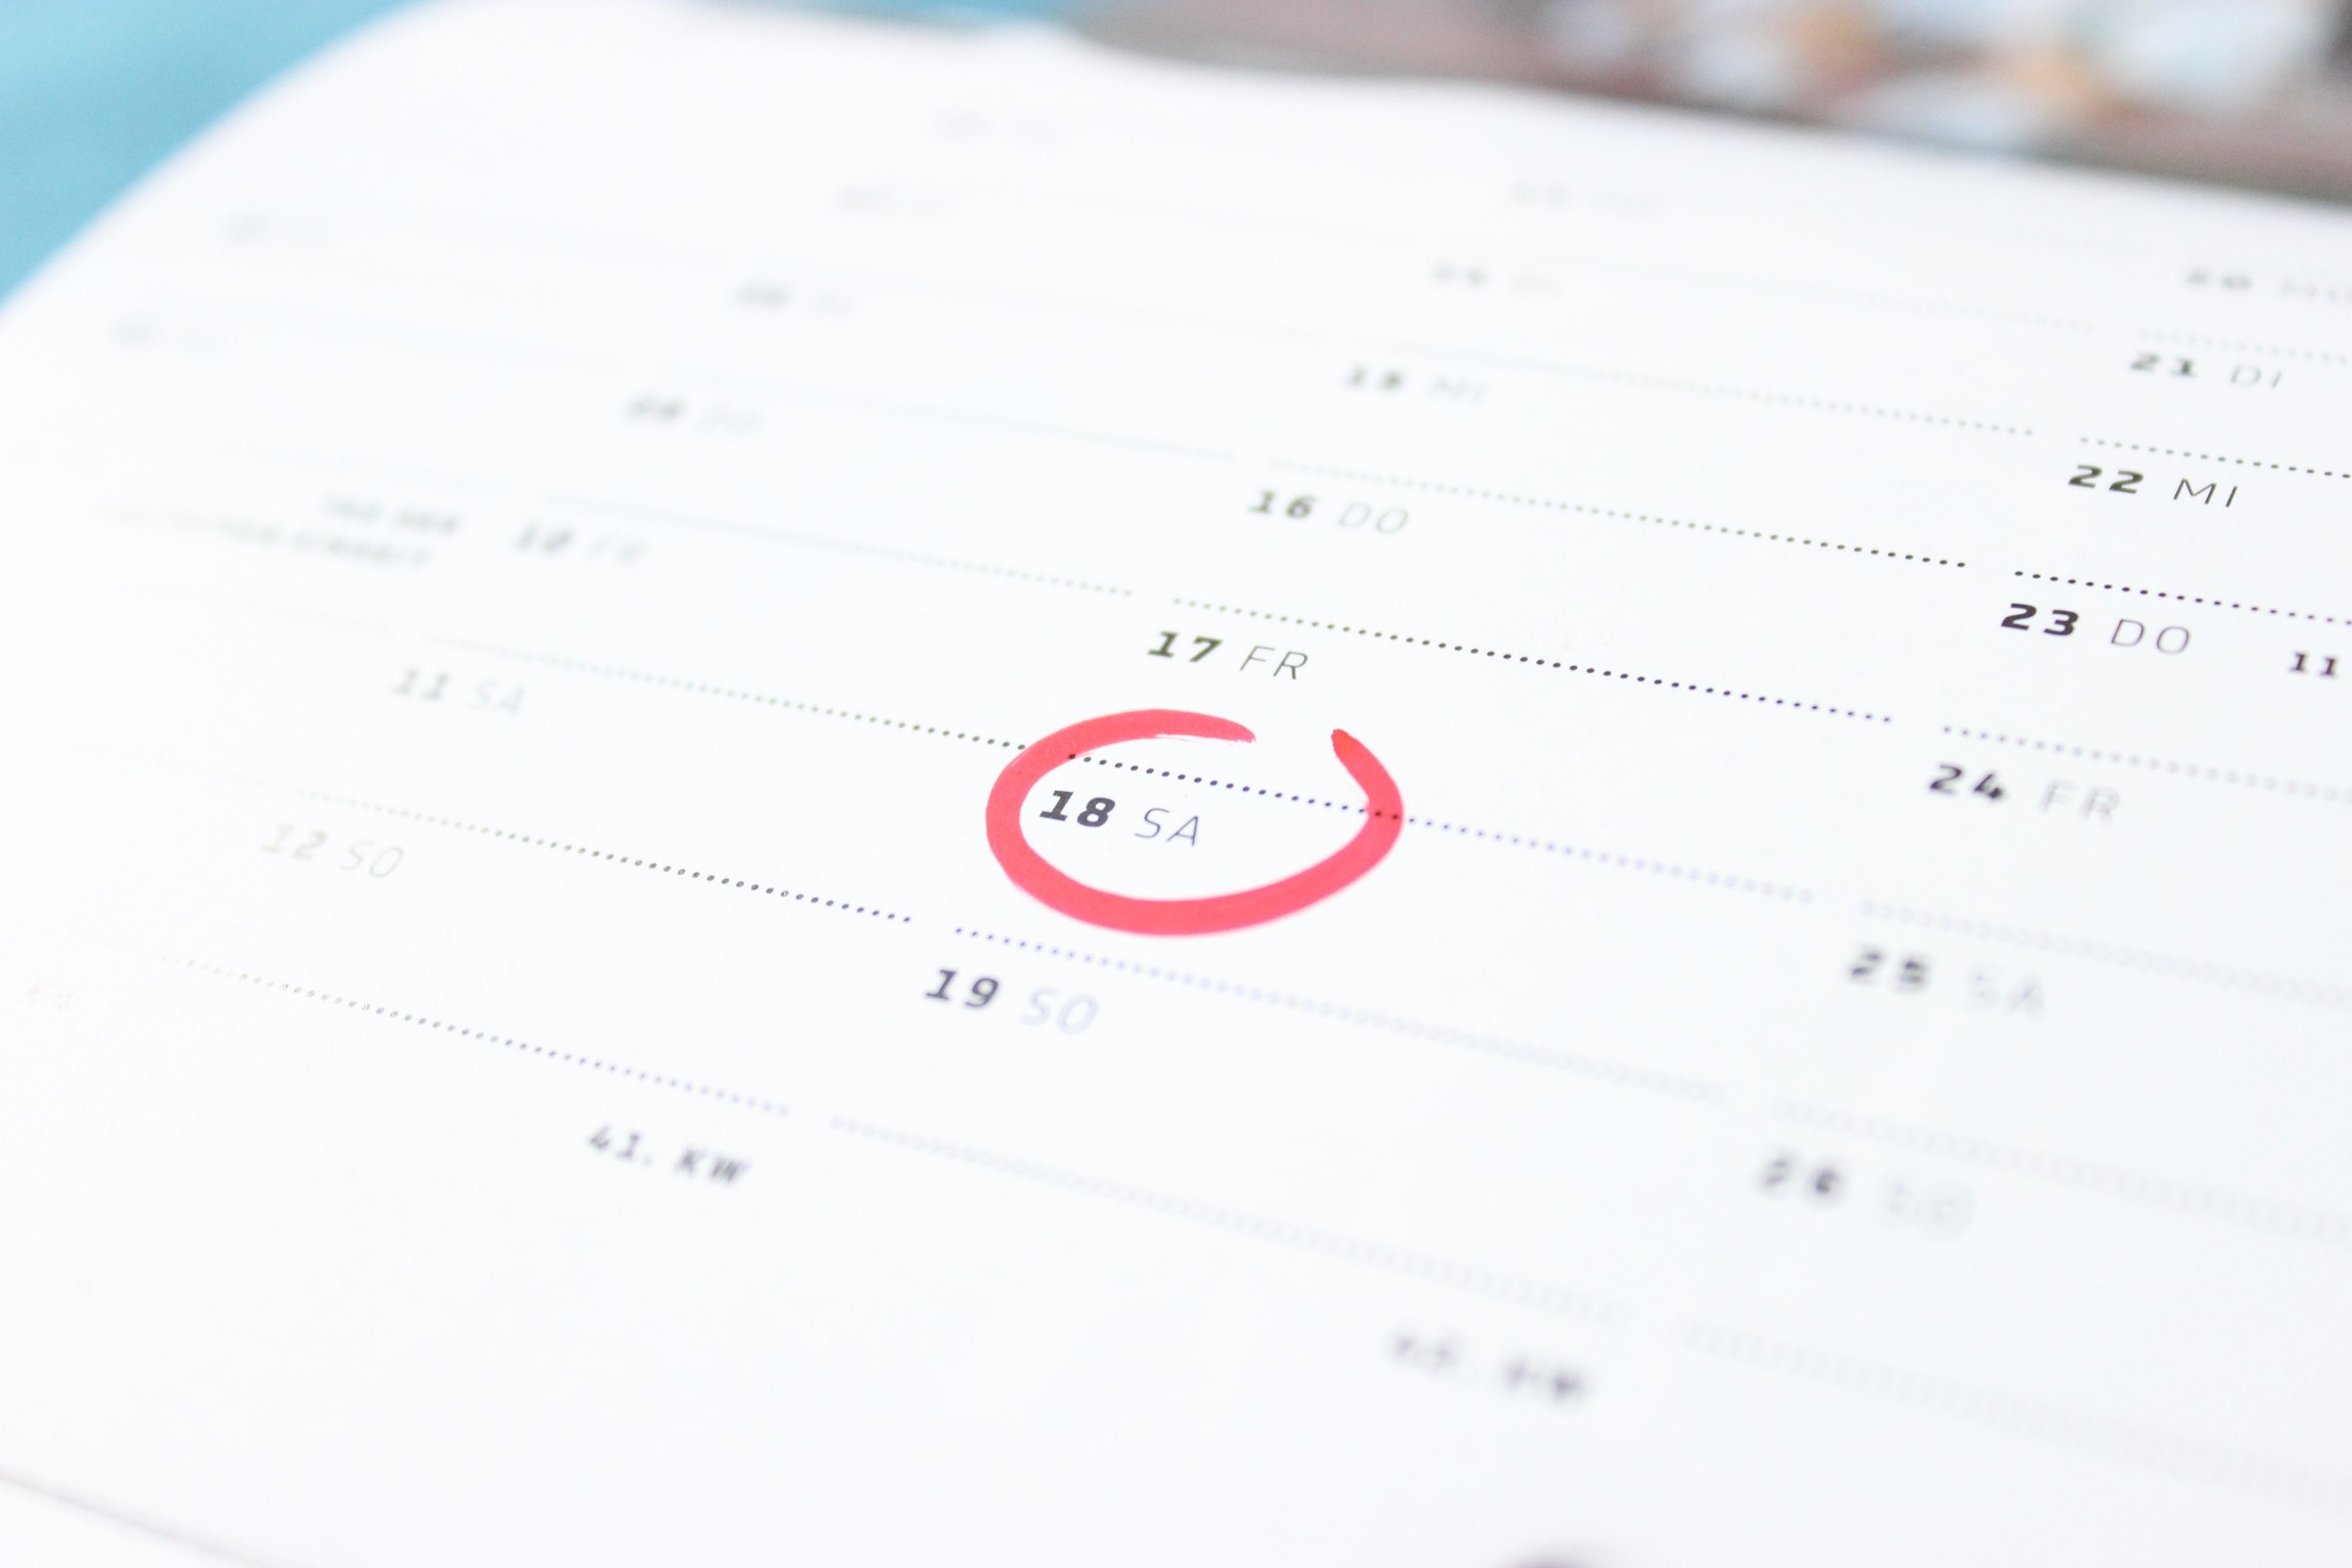 Establish a annual date for reviewing the conflicts policy review and submitting disclosure statements.